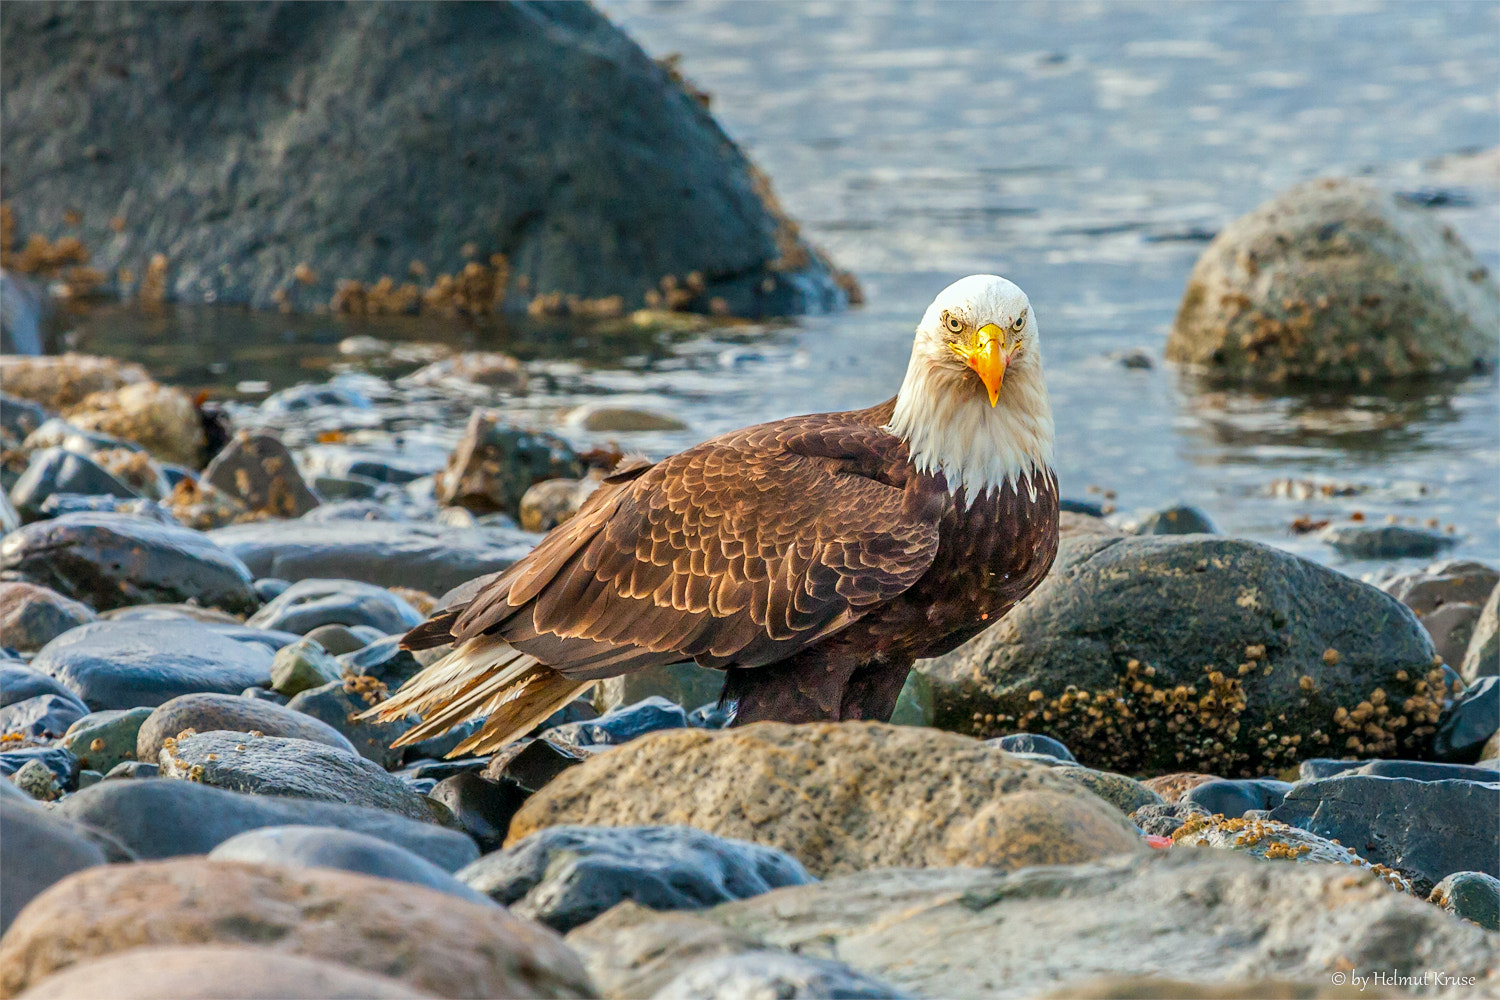 Photograph Bald Eagle at the beach by Helmut Kruse on 500px